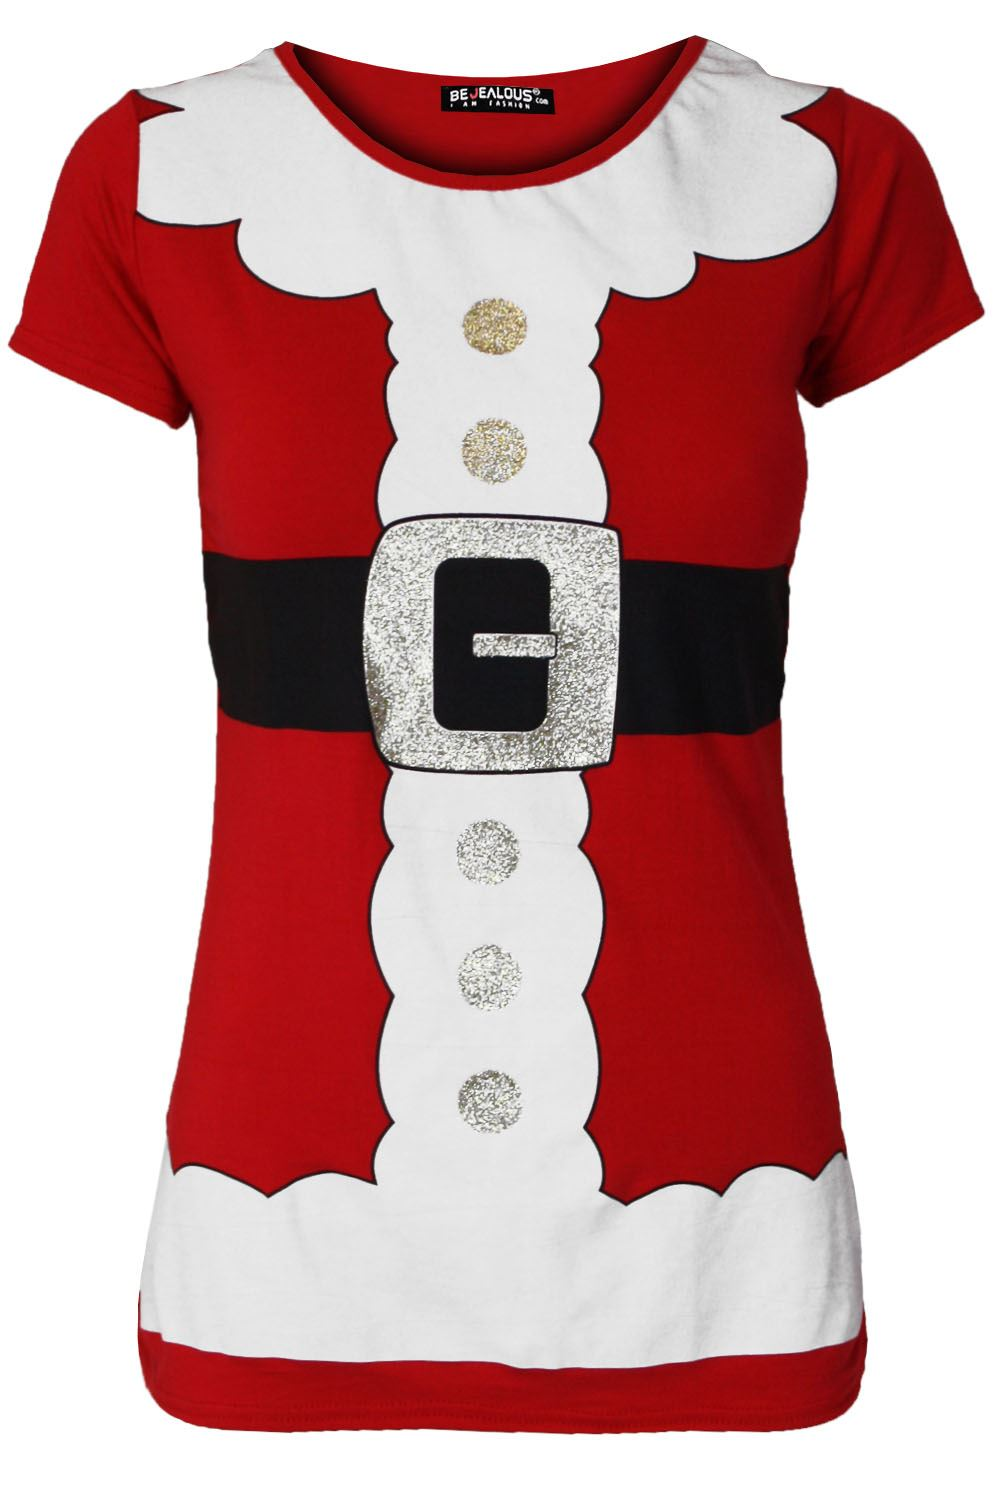 thumbnail 14 - Womens-Christmas-Xmas-Pullover-Elf-Candystick-Snowflakes-Ladies-T-Shirt-Tee-Top